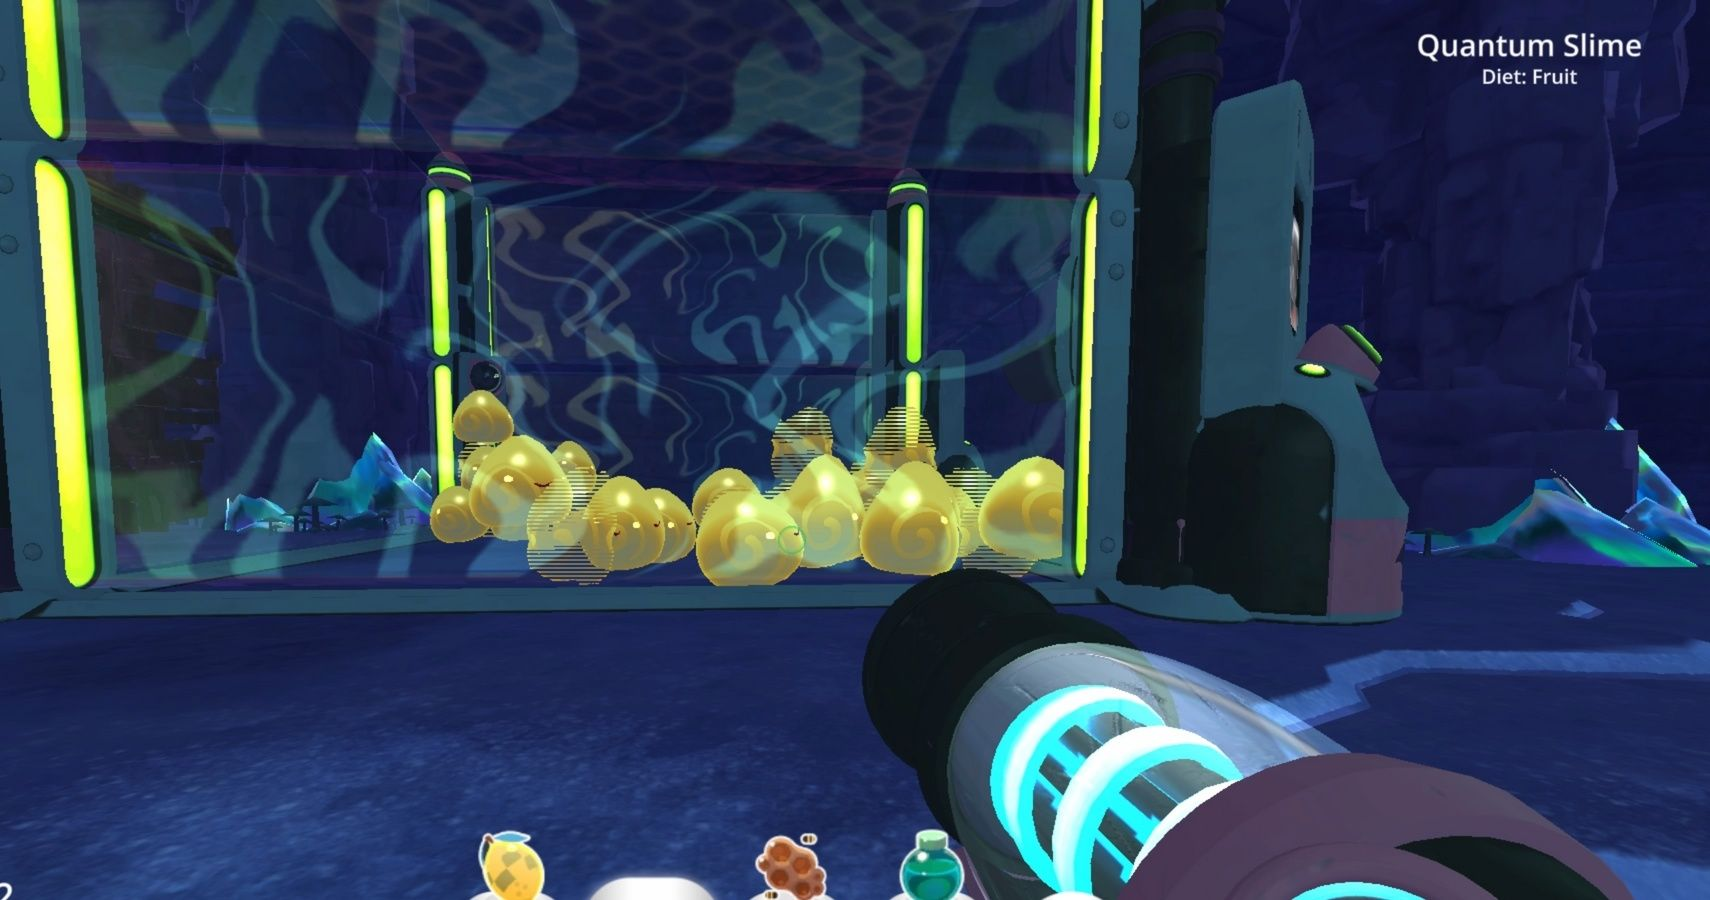 Slime Rancher: How To Contain Quantum Slimes